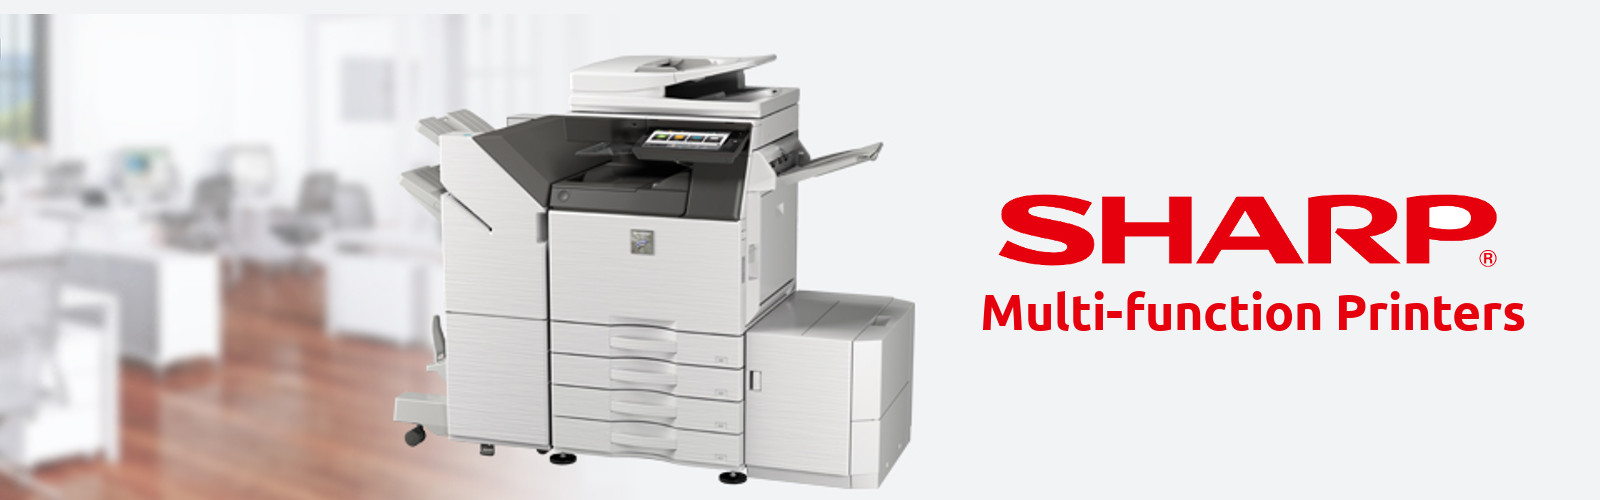 eprint-digitech-sharp-mfd-printers